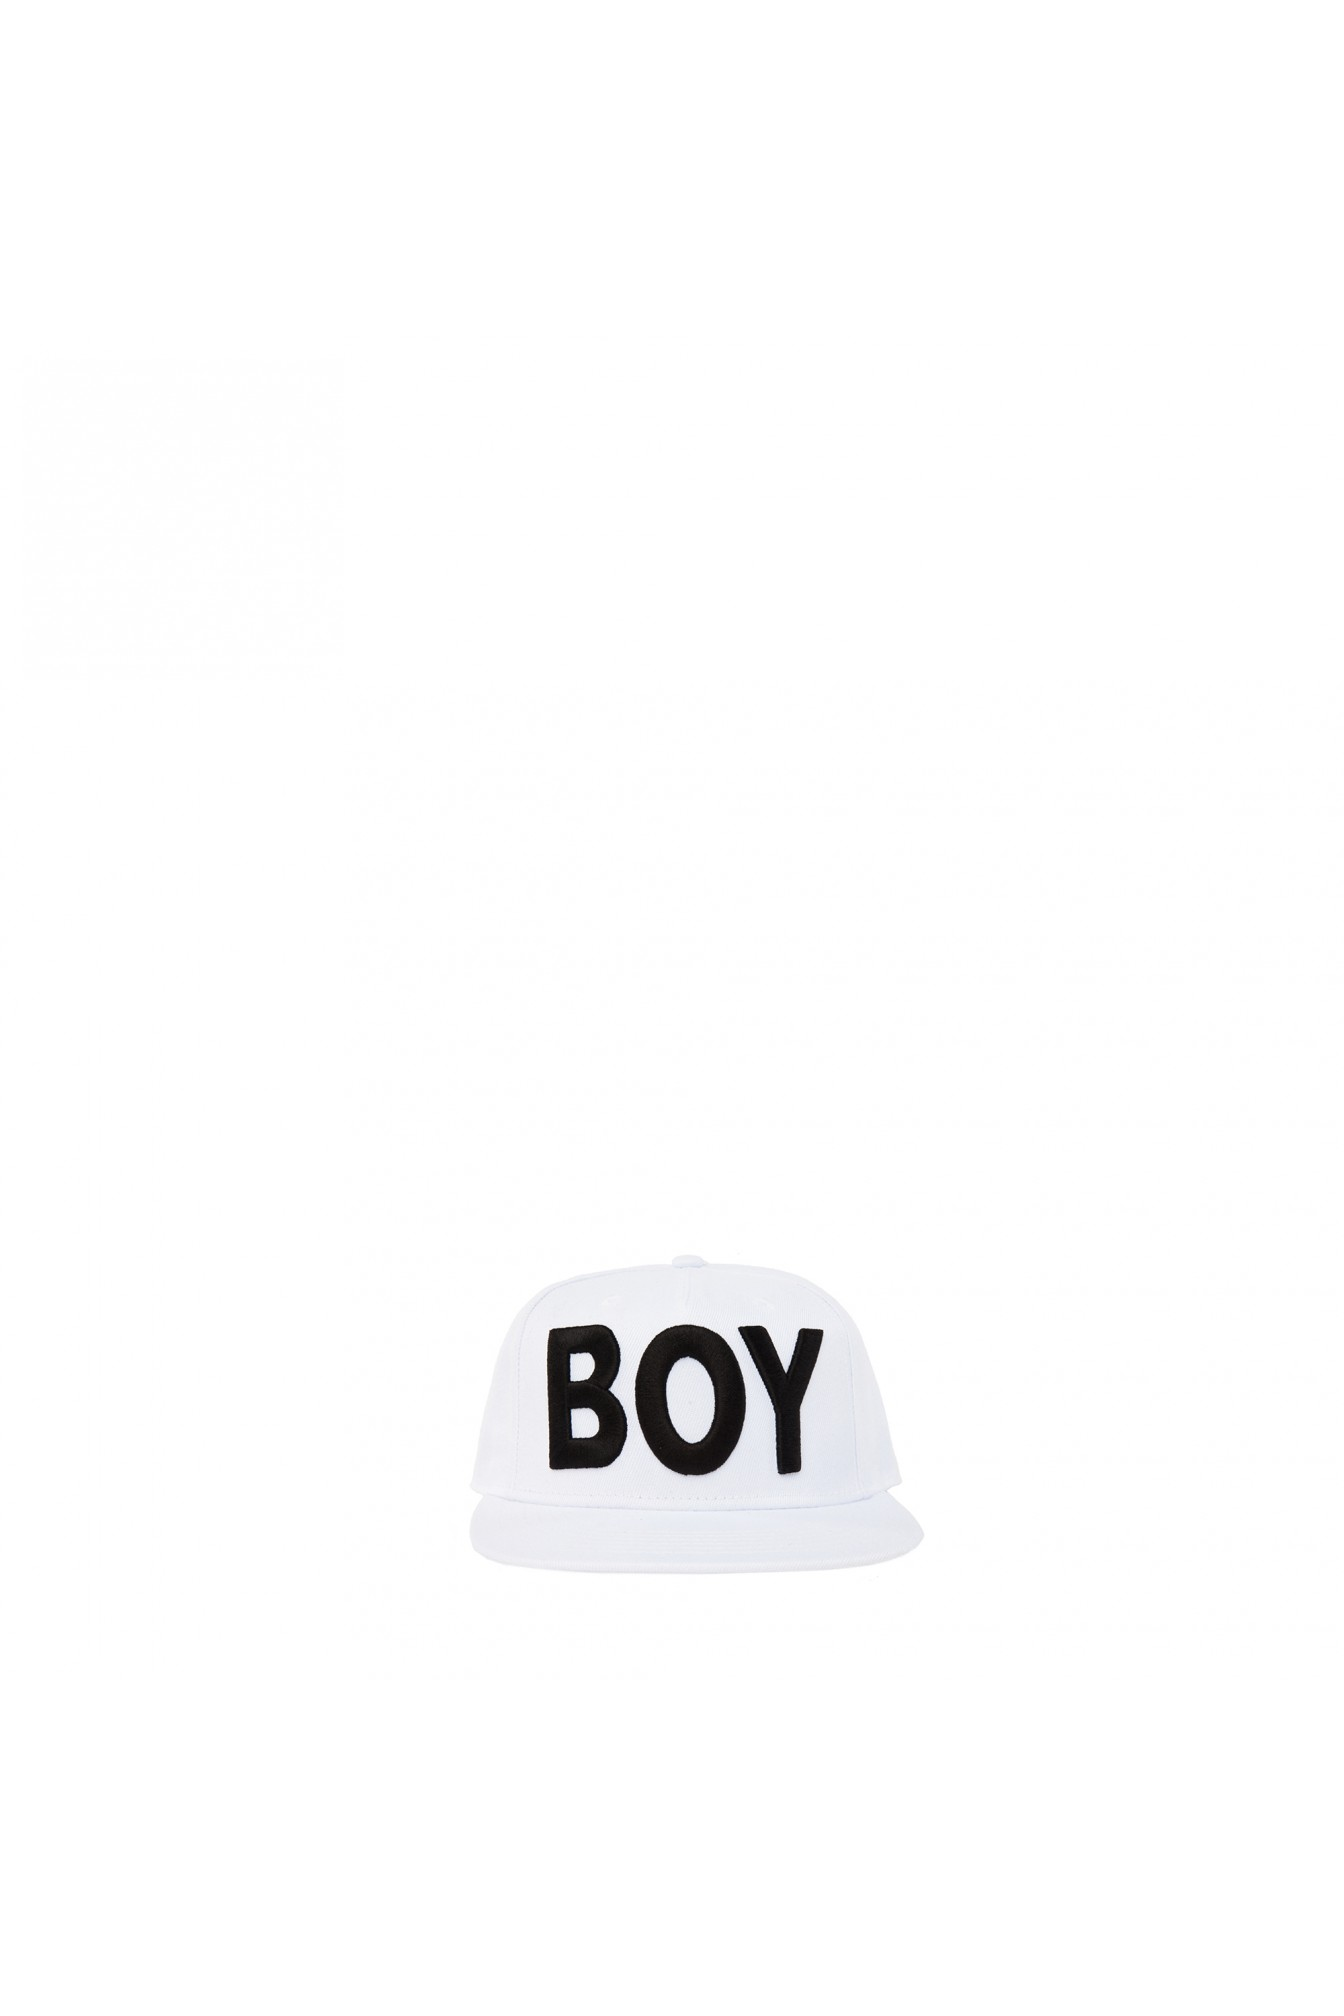 CAPPELLO - BLA401 - BOY LONDON